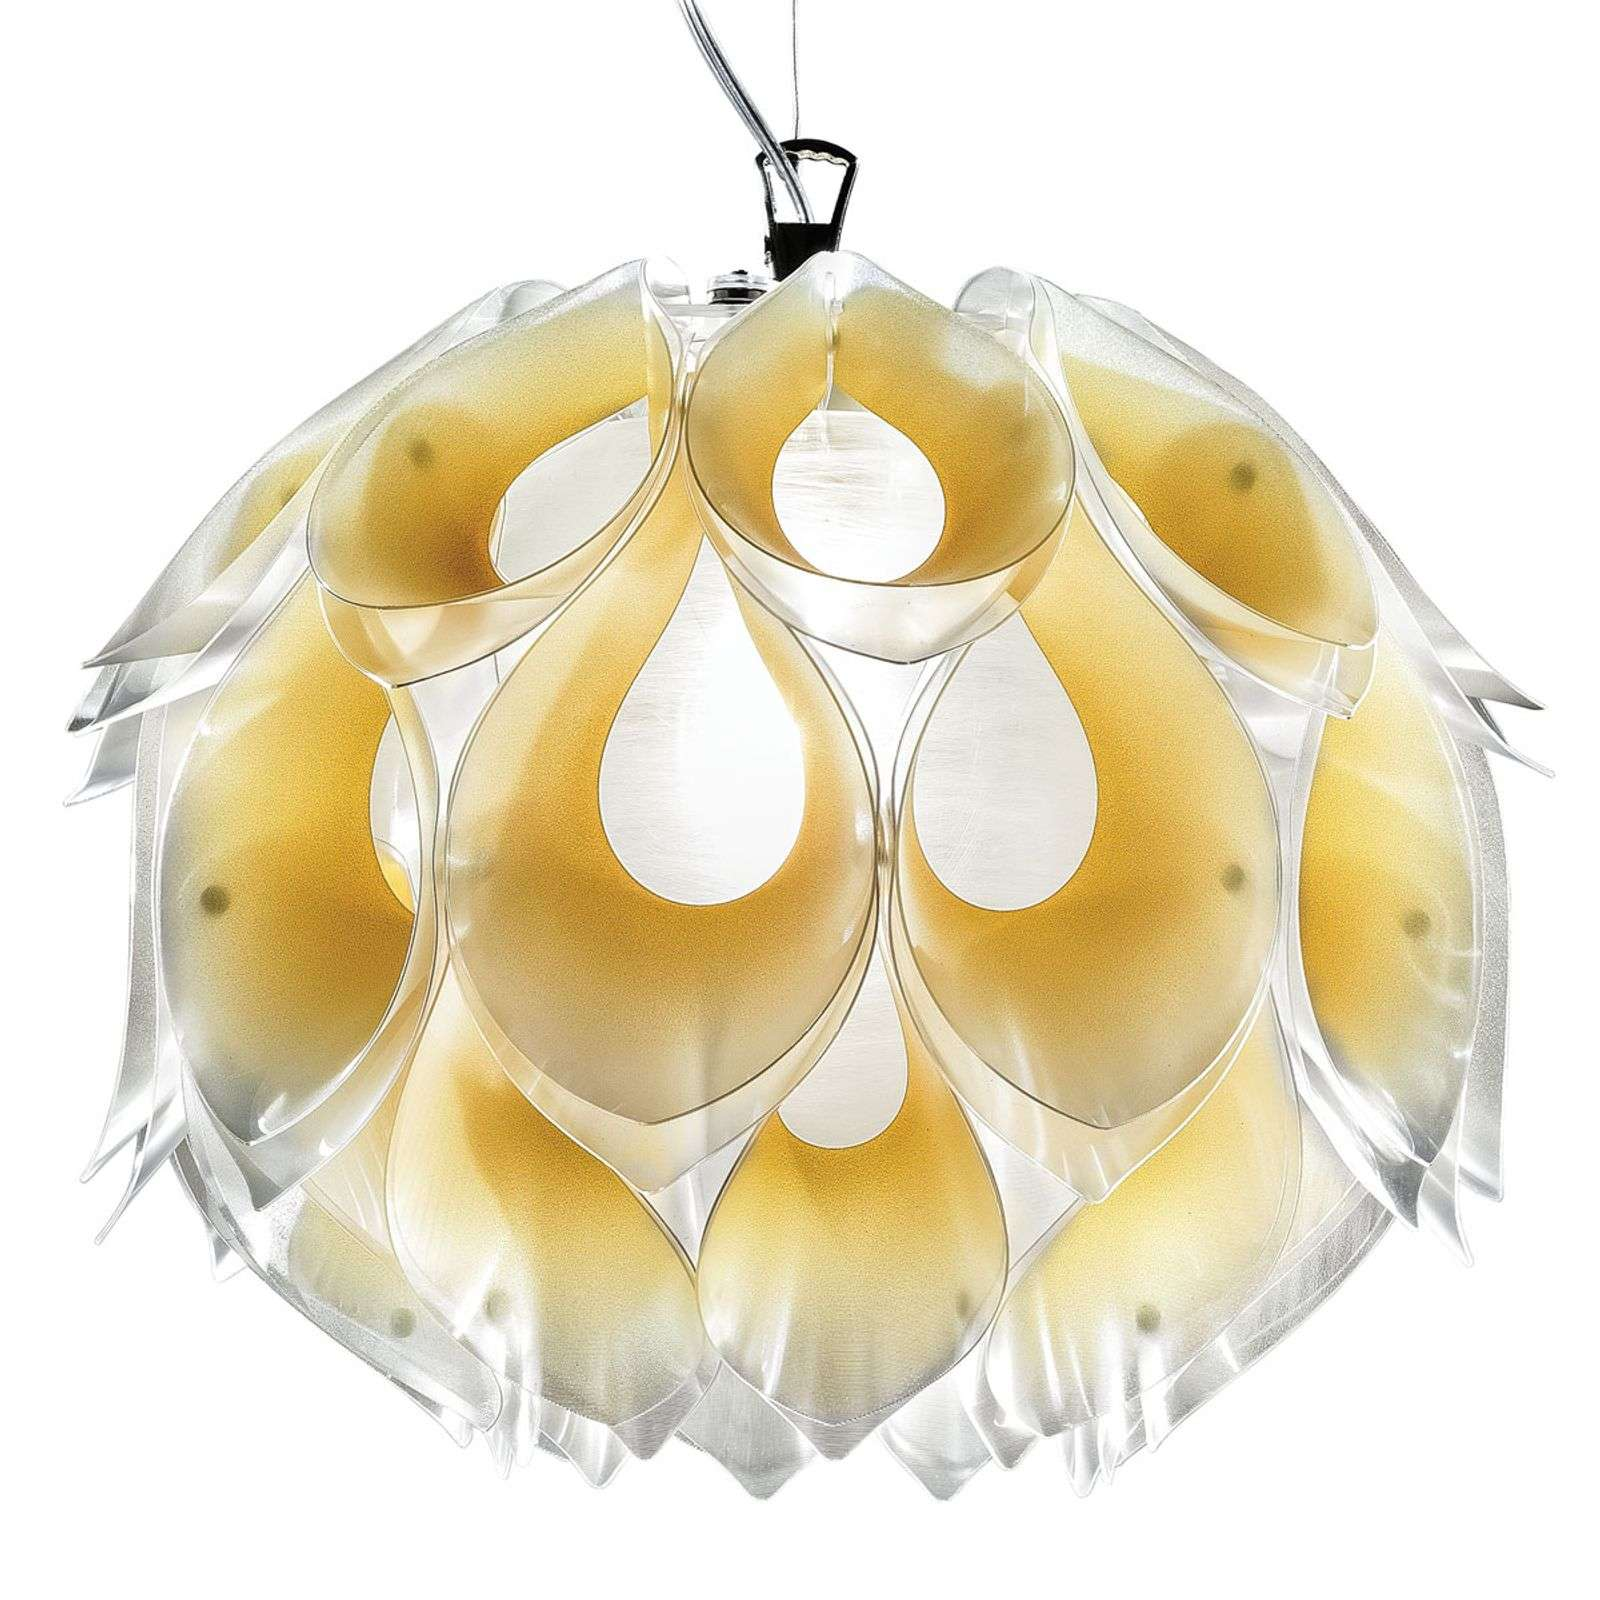 Magnifique suspension chatoyante Flora M, jaune